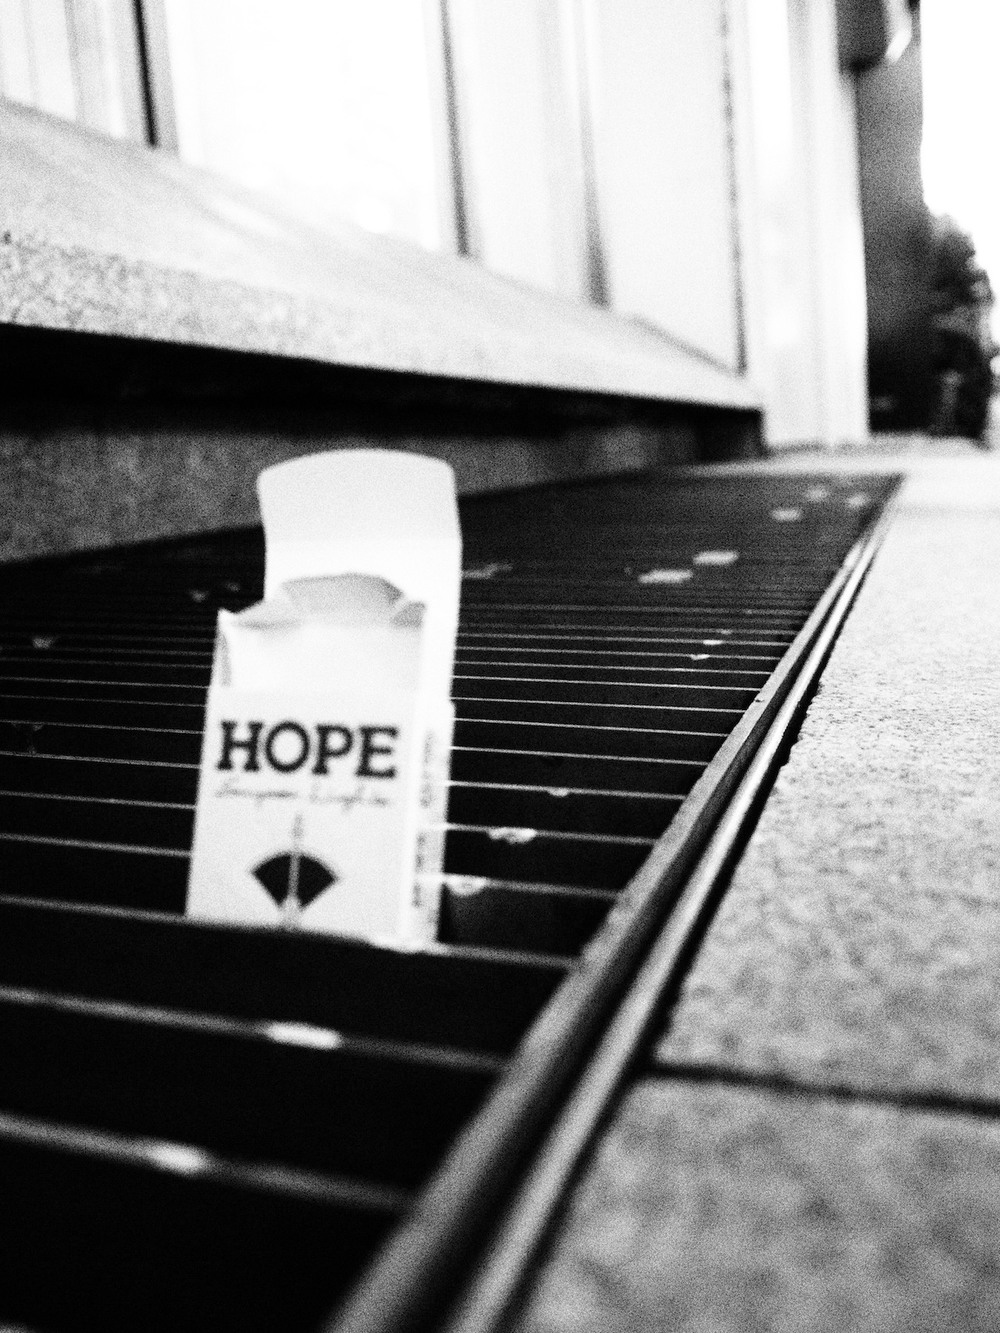 希望/Hope.  Taken somewhere in Tokyo.